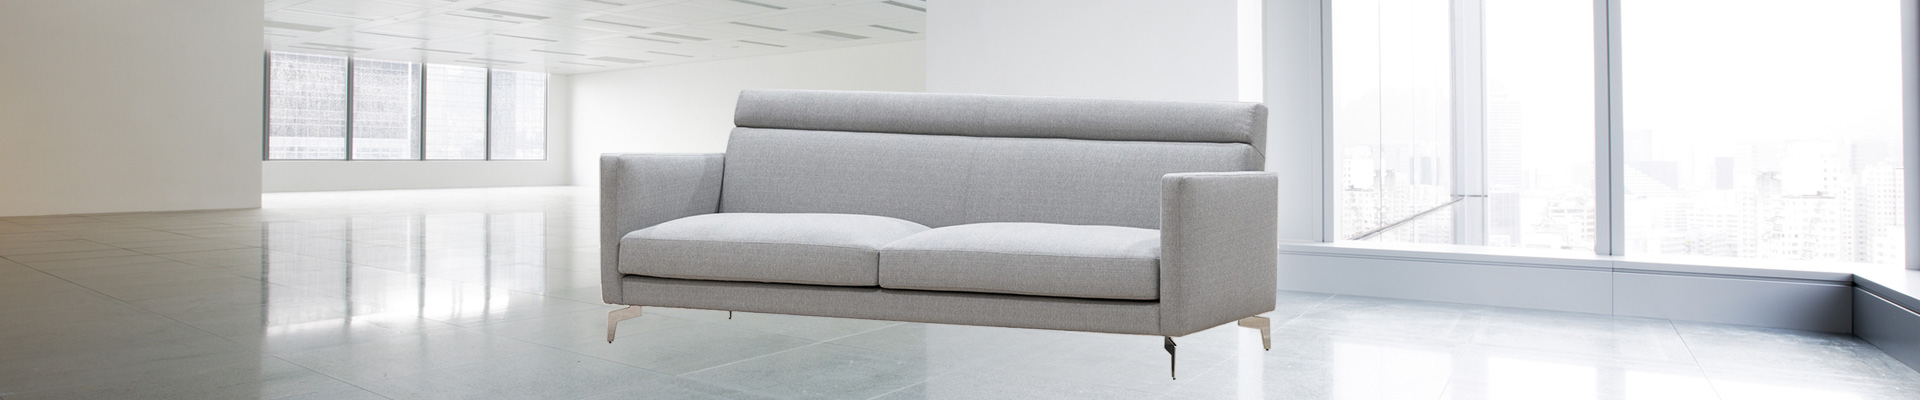 Sofa Chairs Upholstery In Dubai Fabric And Leather